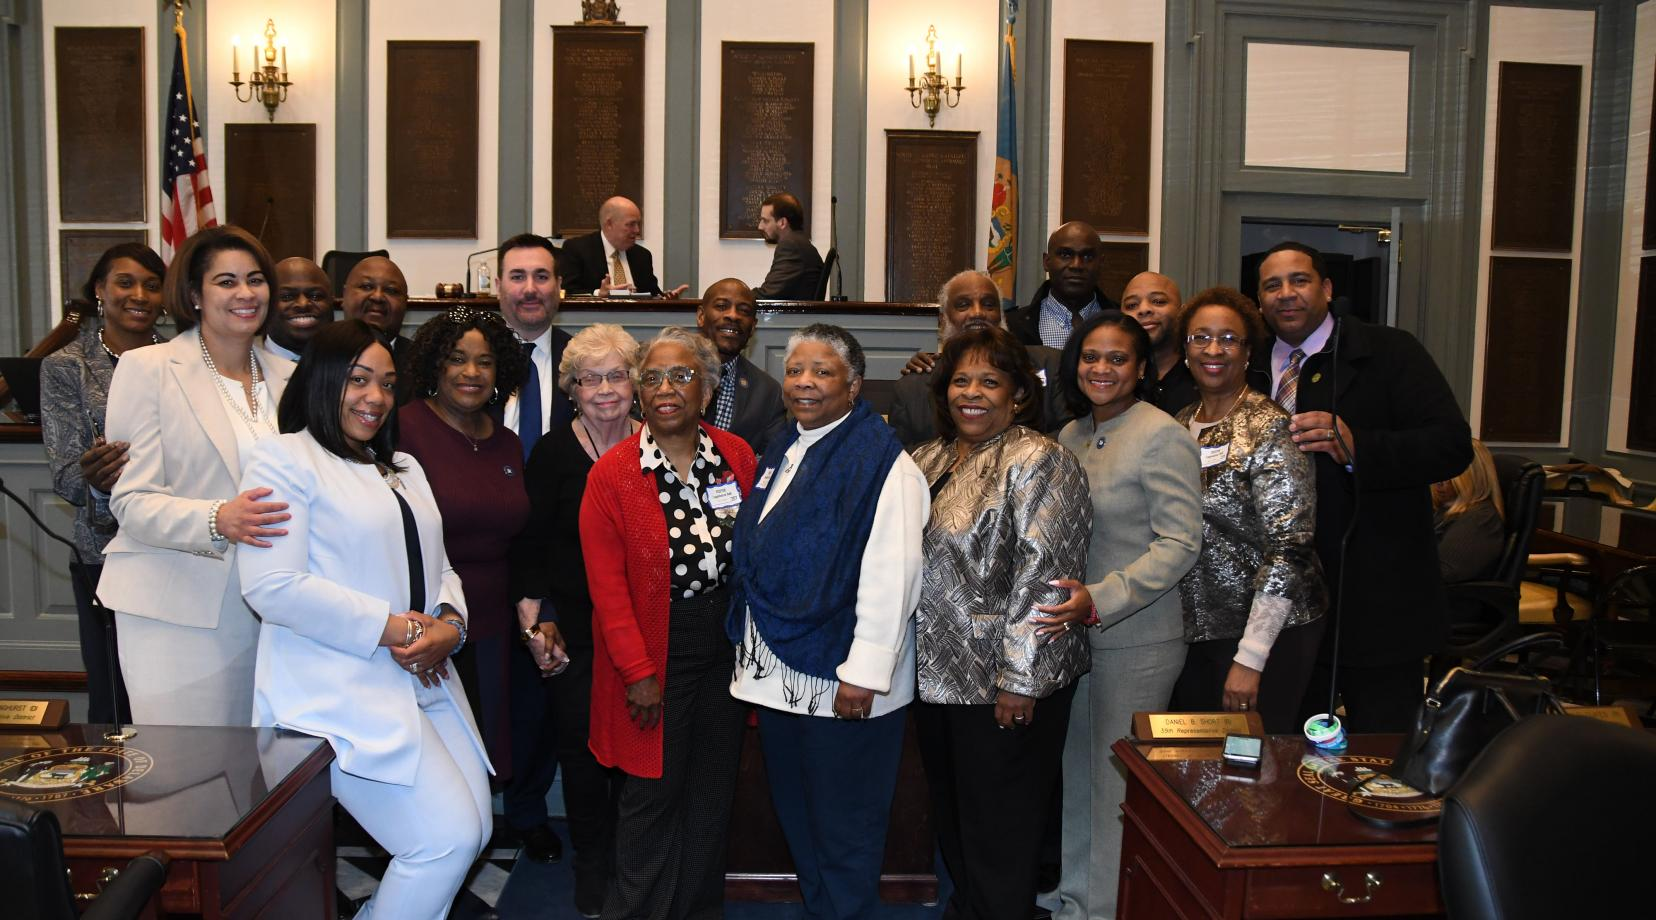 The family of Hattie Mishoe (which include her daughters Bernellyn Carey in the center in red, and to her right Rev. Rita Paige and University President Wilma Mishoe) along with some of the House Joint Resolution No. 2 sponsors and friends celebrate the legislative expression honoring the former First Lady and the wife of then-Delaware State College President Luna I. Mishoe.